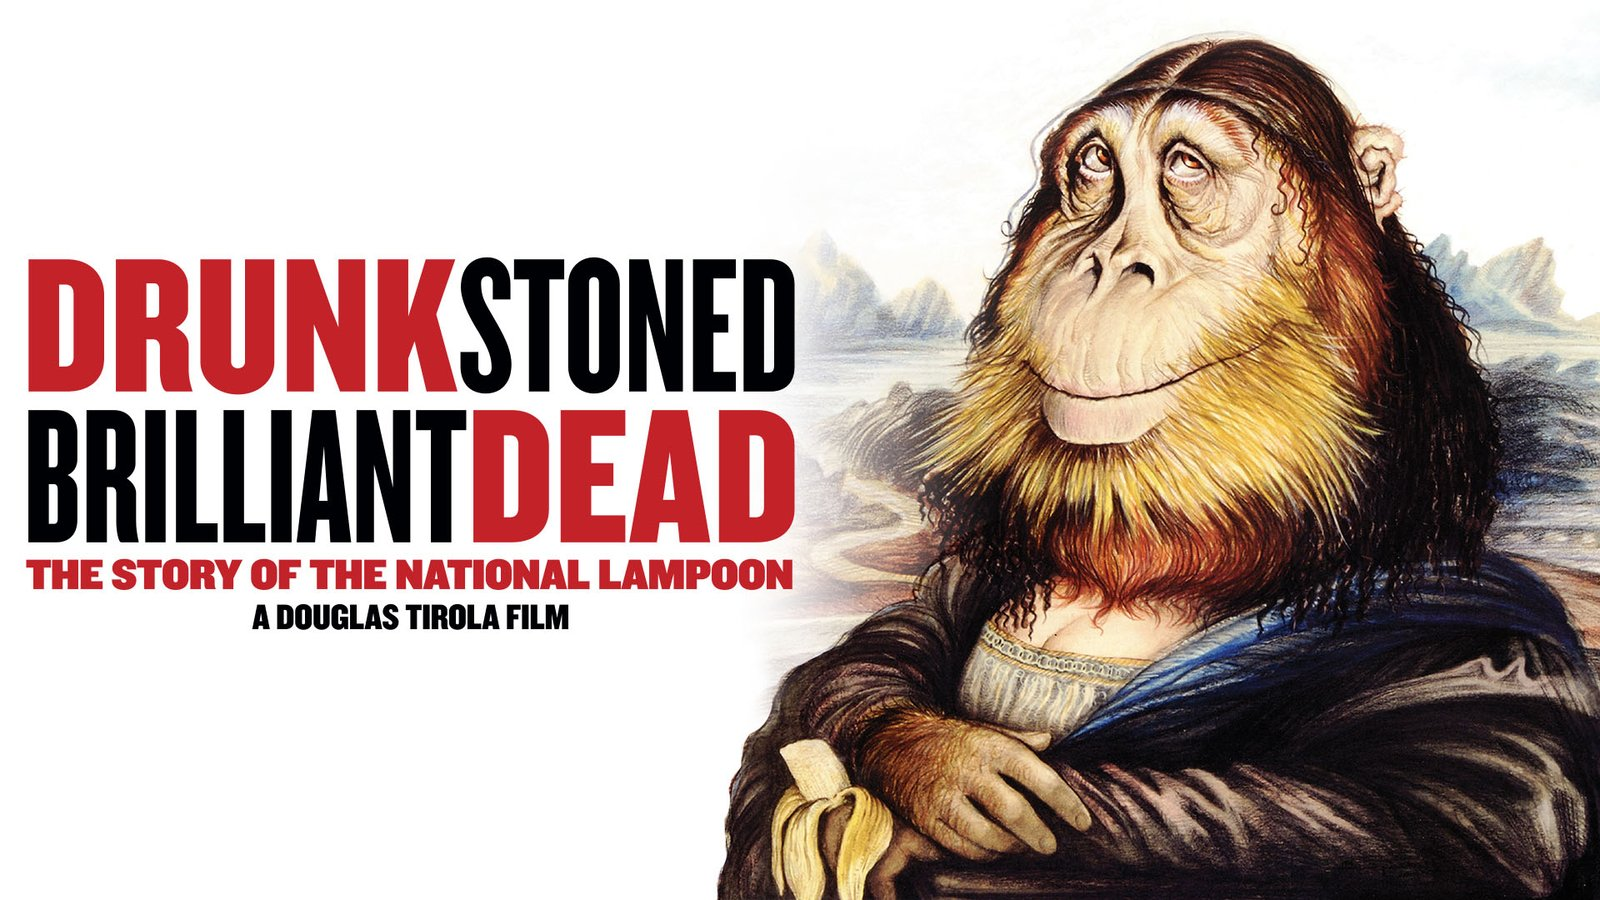 Drunk, Stoned, Brilliant, Dead - The Story of the National Lampoon